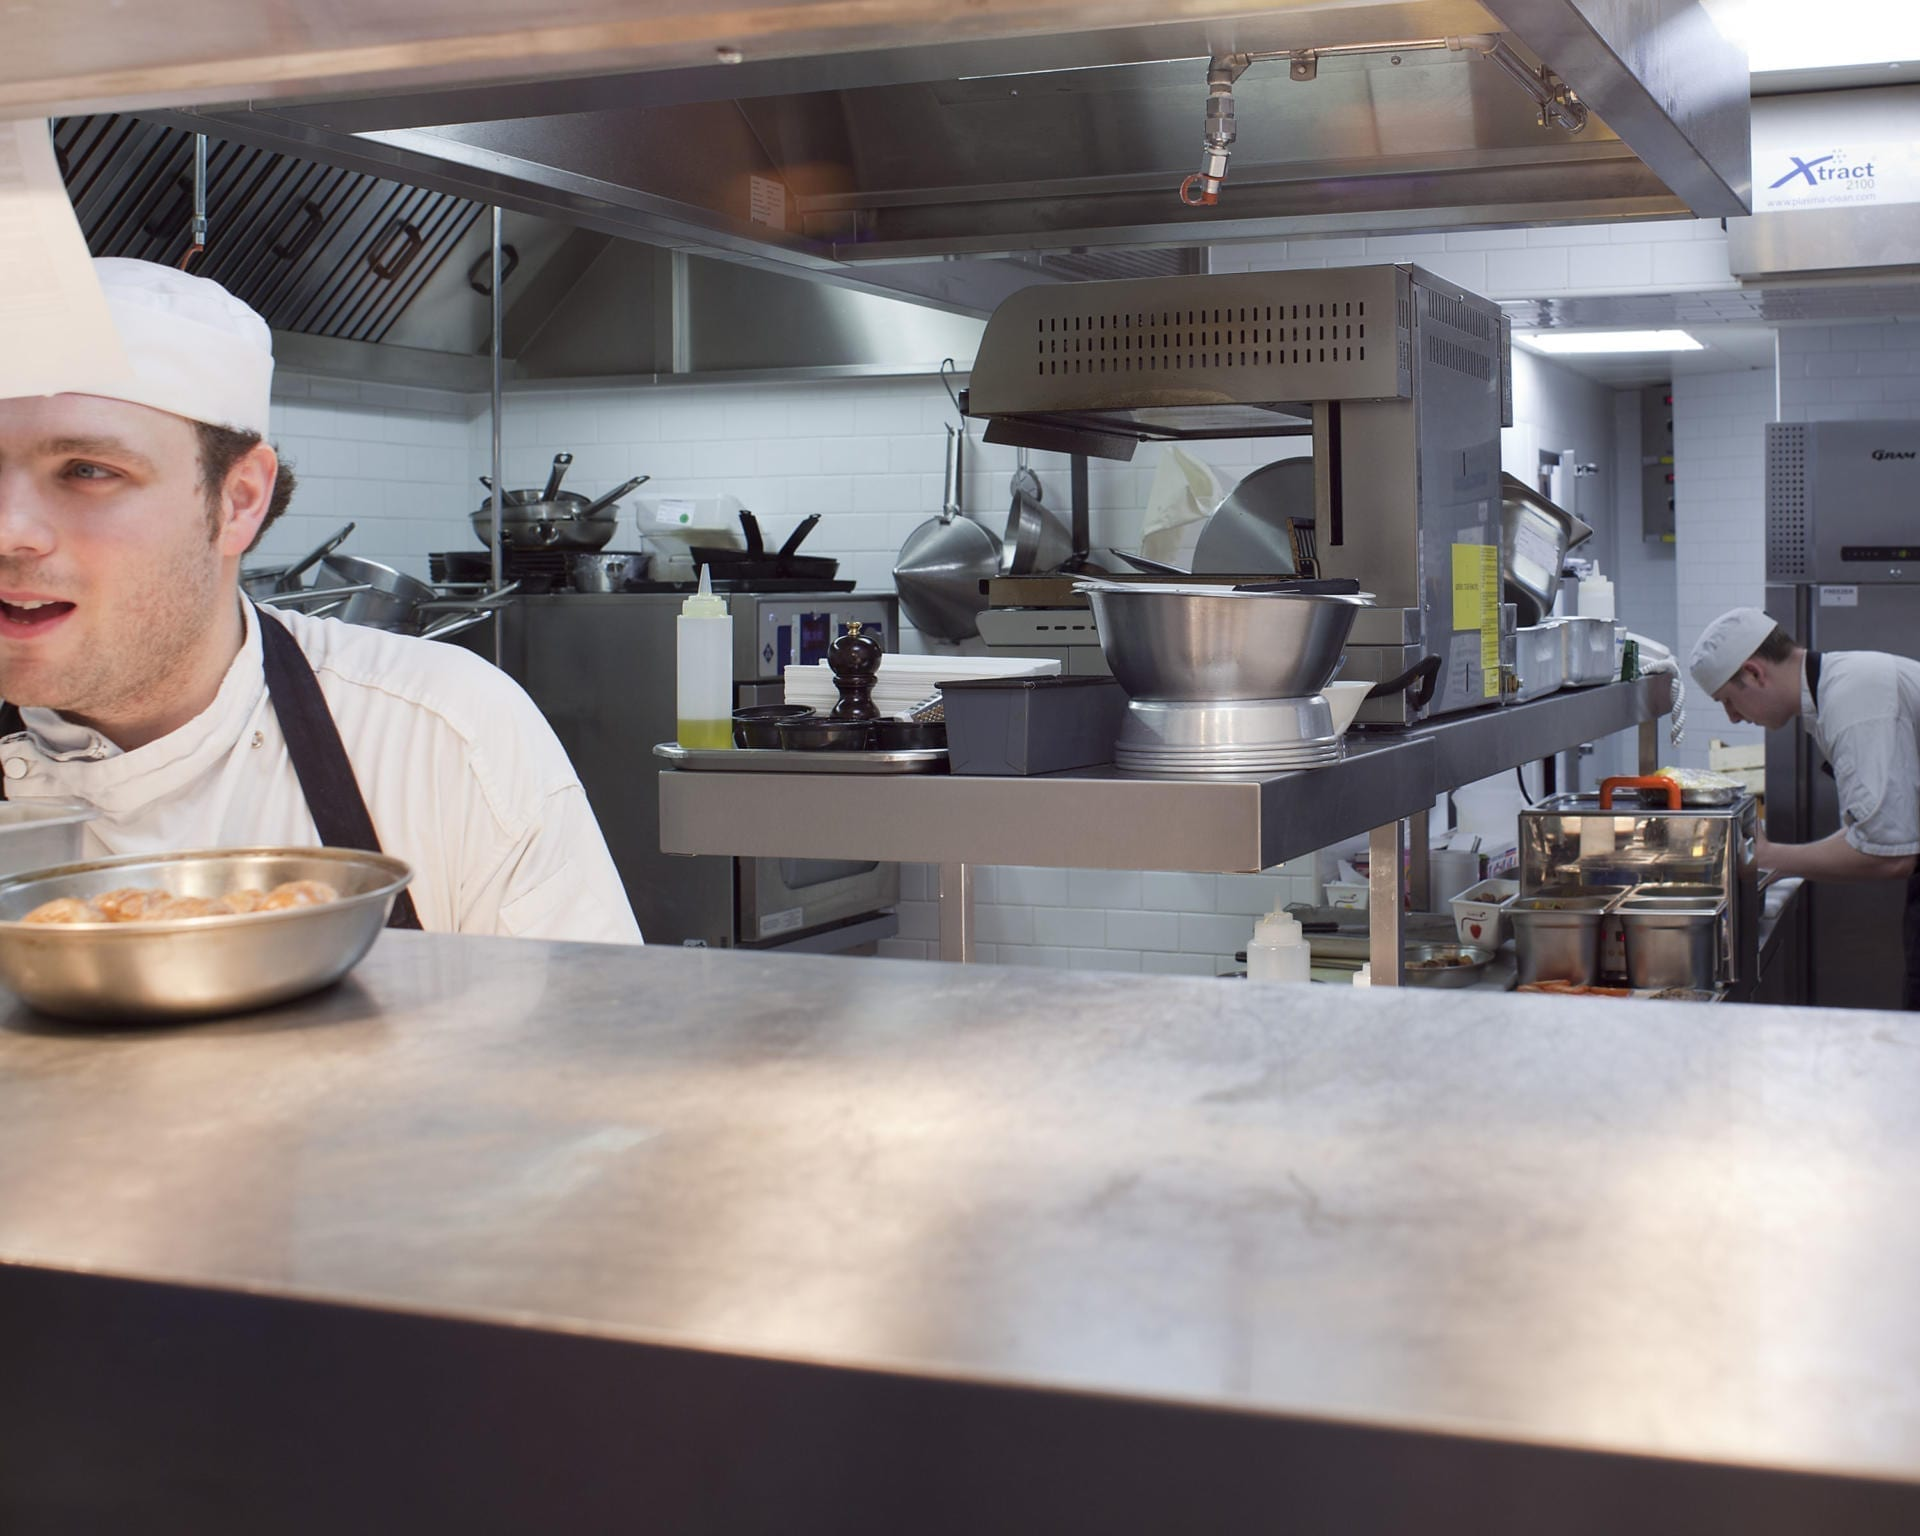 Montpellier-Chapter-Cheltenham-Restaurant-Kitchen-Front-of-house-Servery-Food-Display-Pizza-spacecatering_3